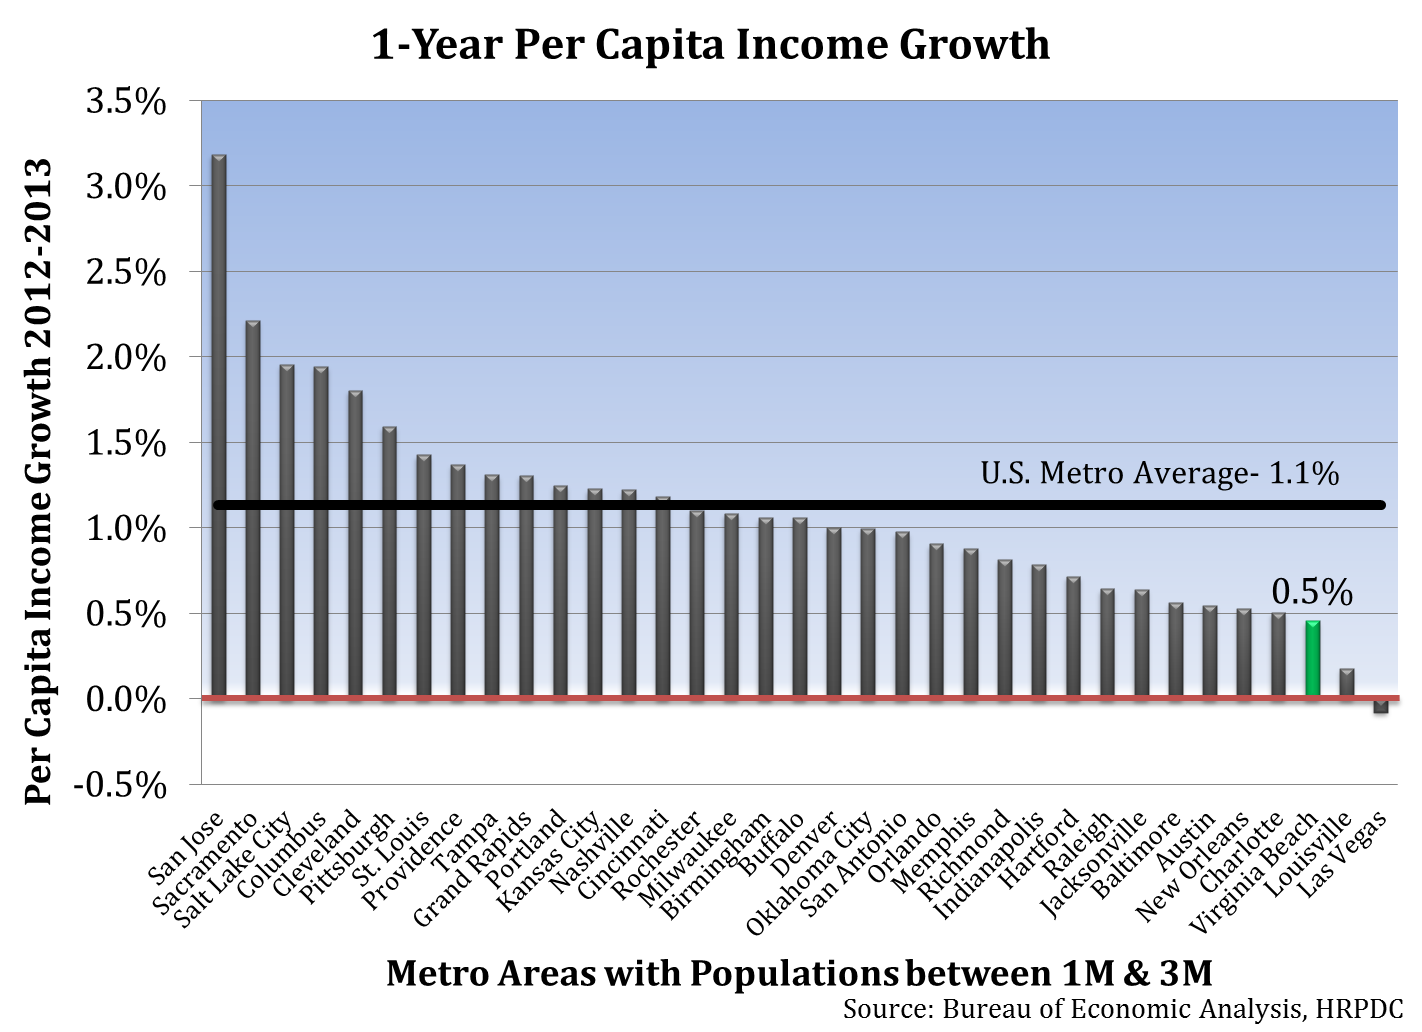 One Year Per Capita Income Growth